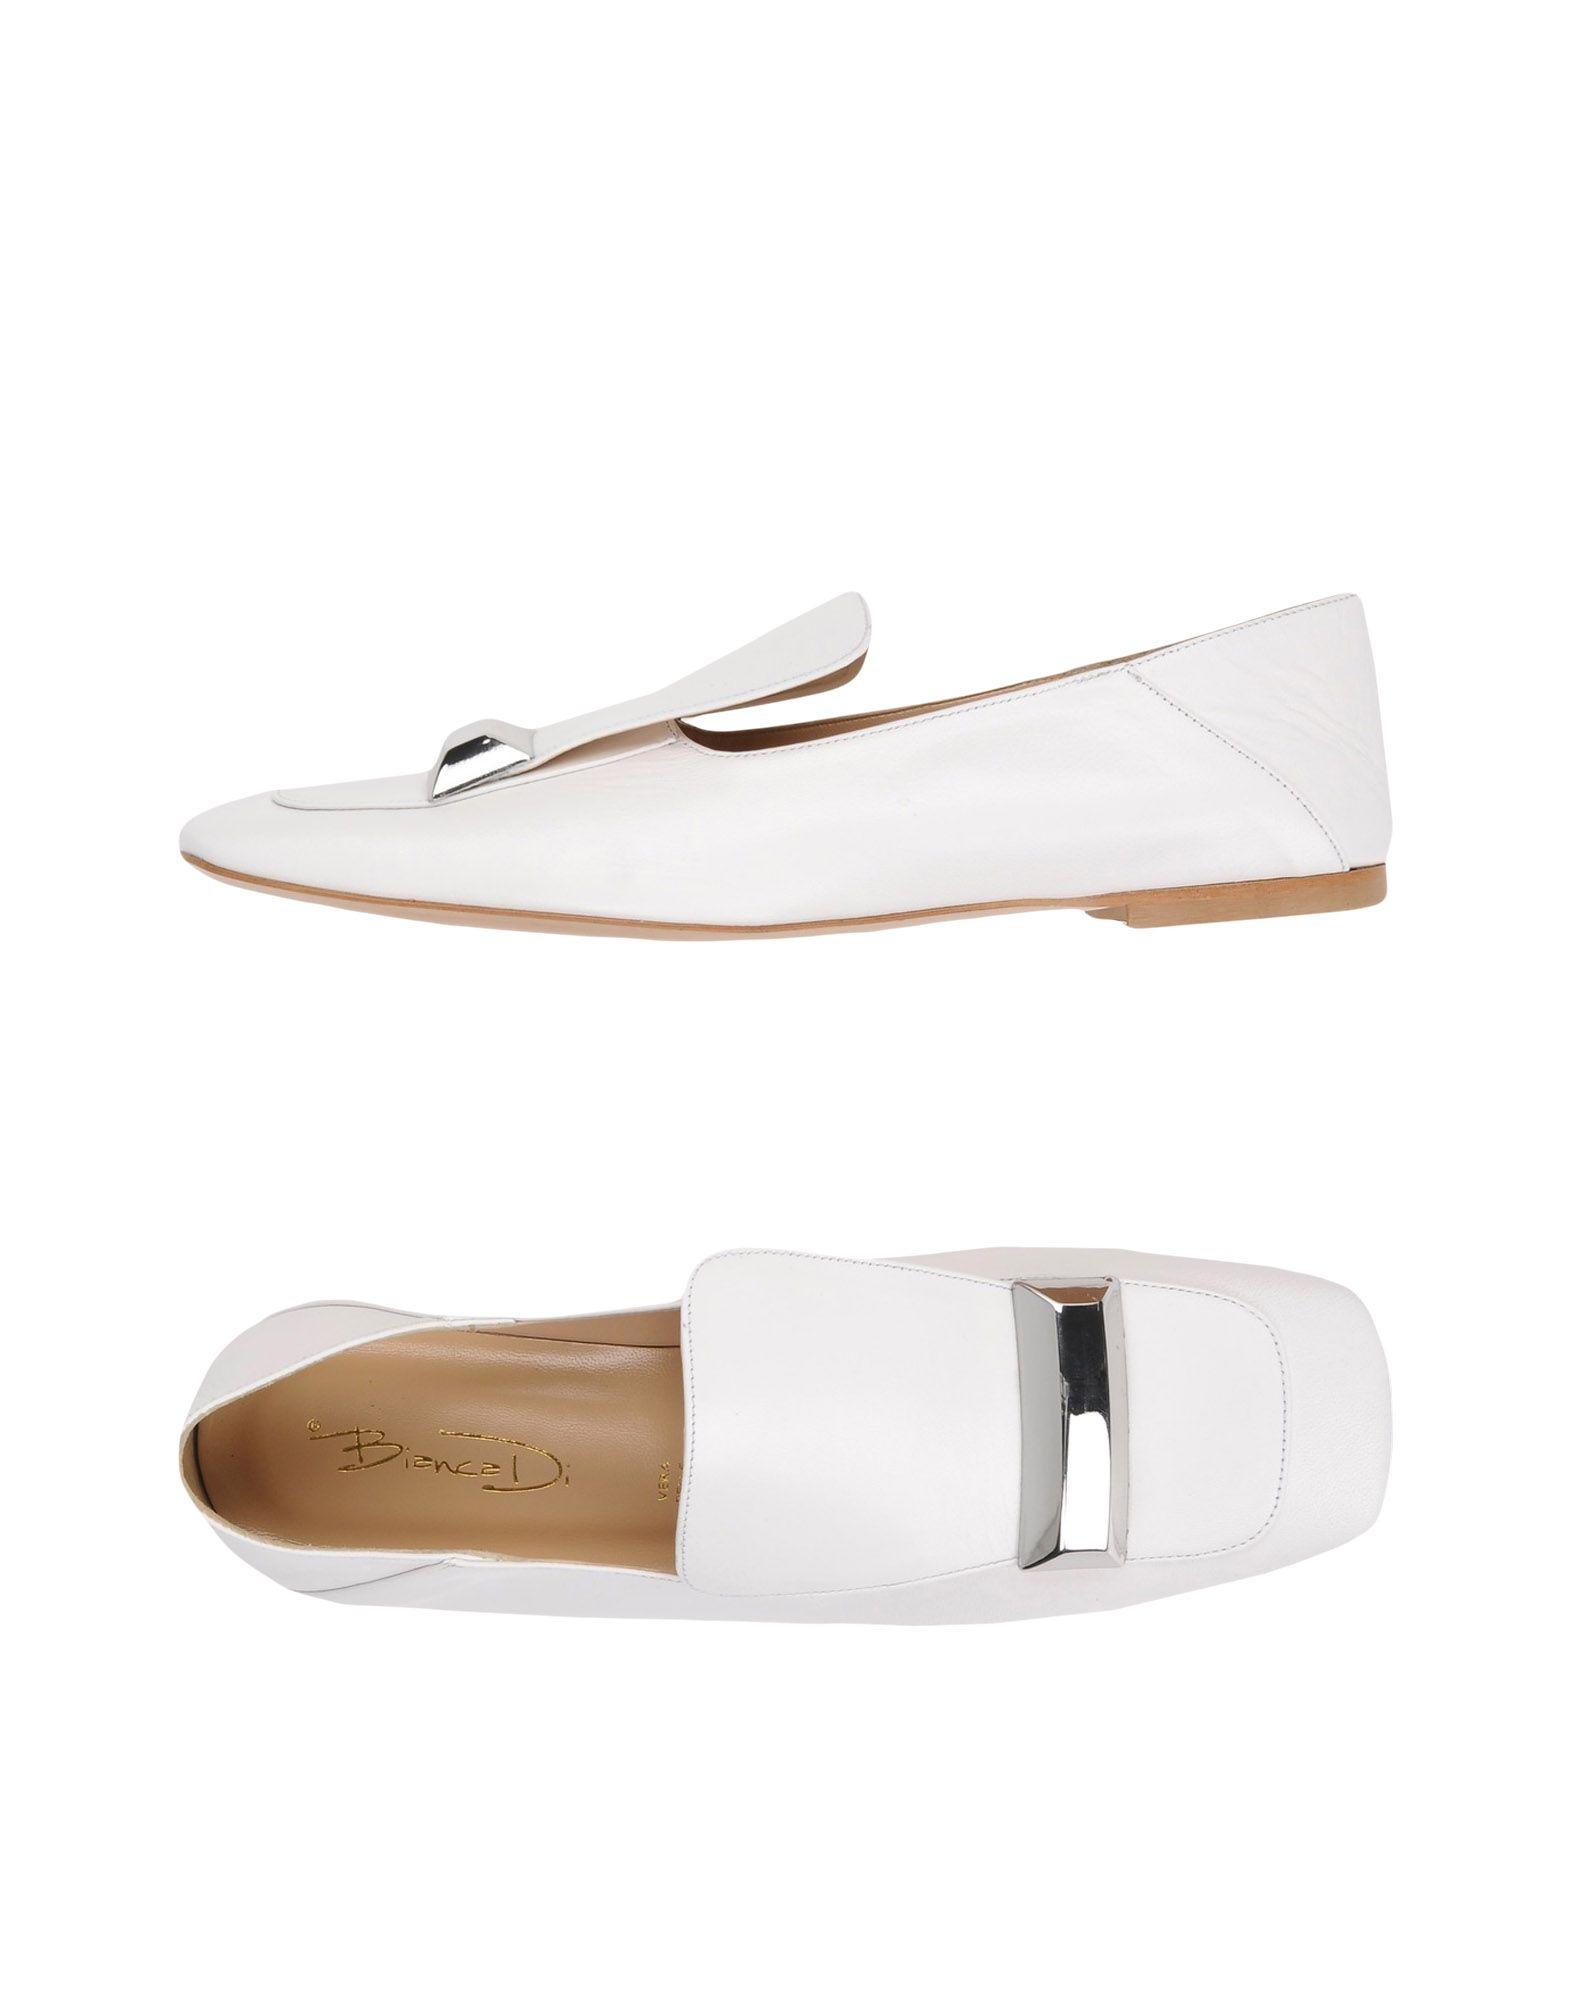 Bianca Di Loafers - Women Bianca Di Loafers online - on  United Kingdom - online 11440743BE e720f2